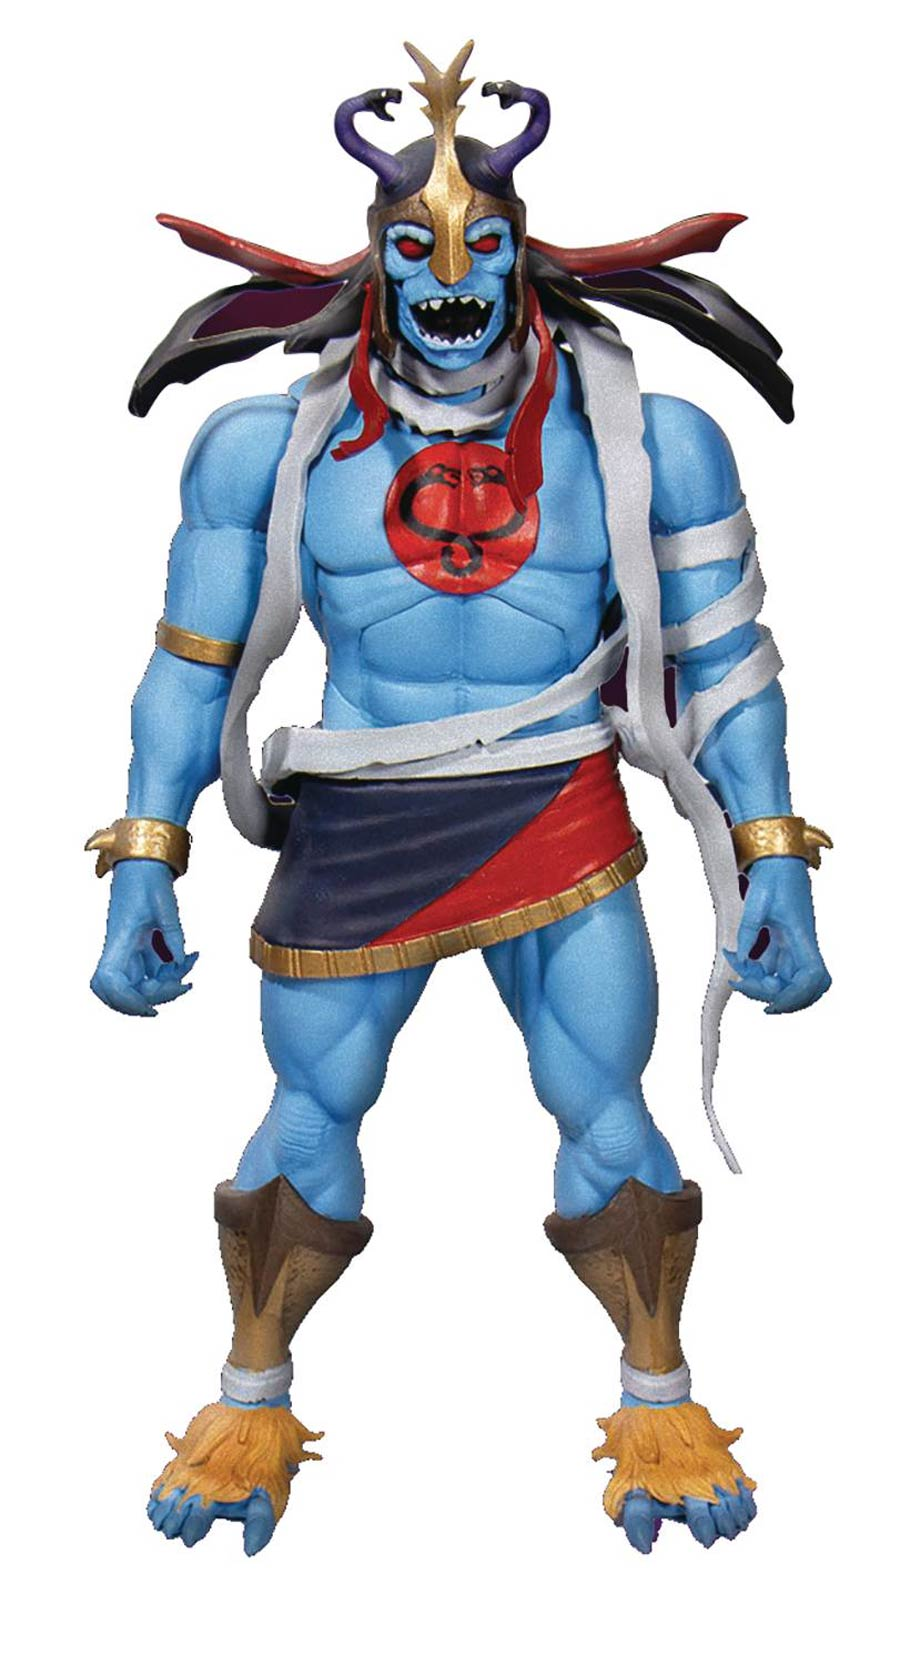 Thundercats Ultimates Wave 2 Mumm-Ra The Ever-Living Action Figure - RESOLICITED